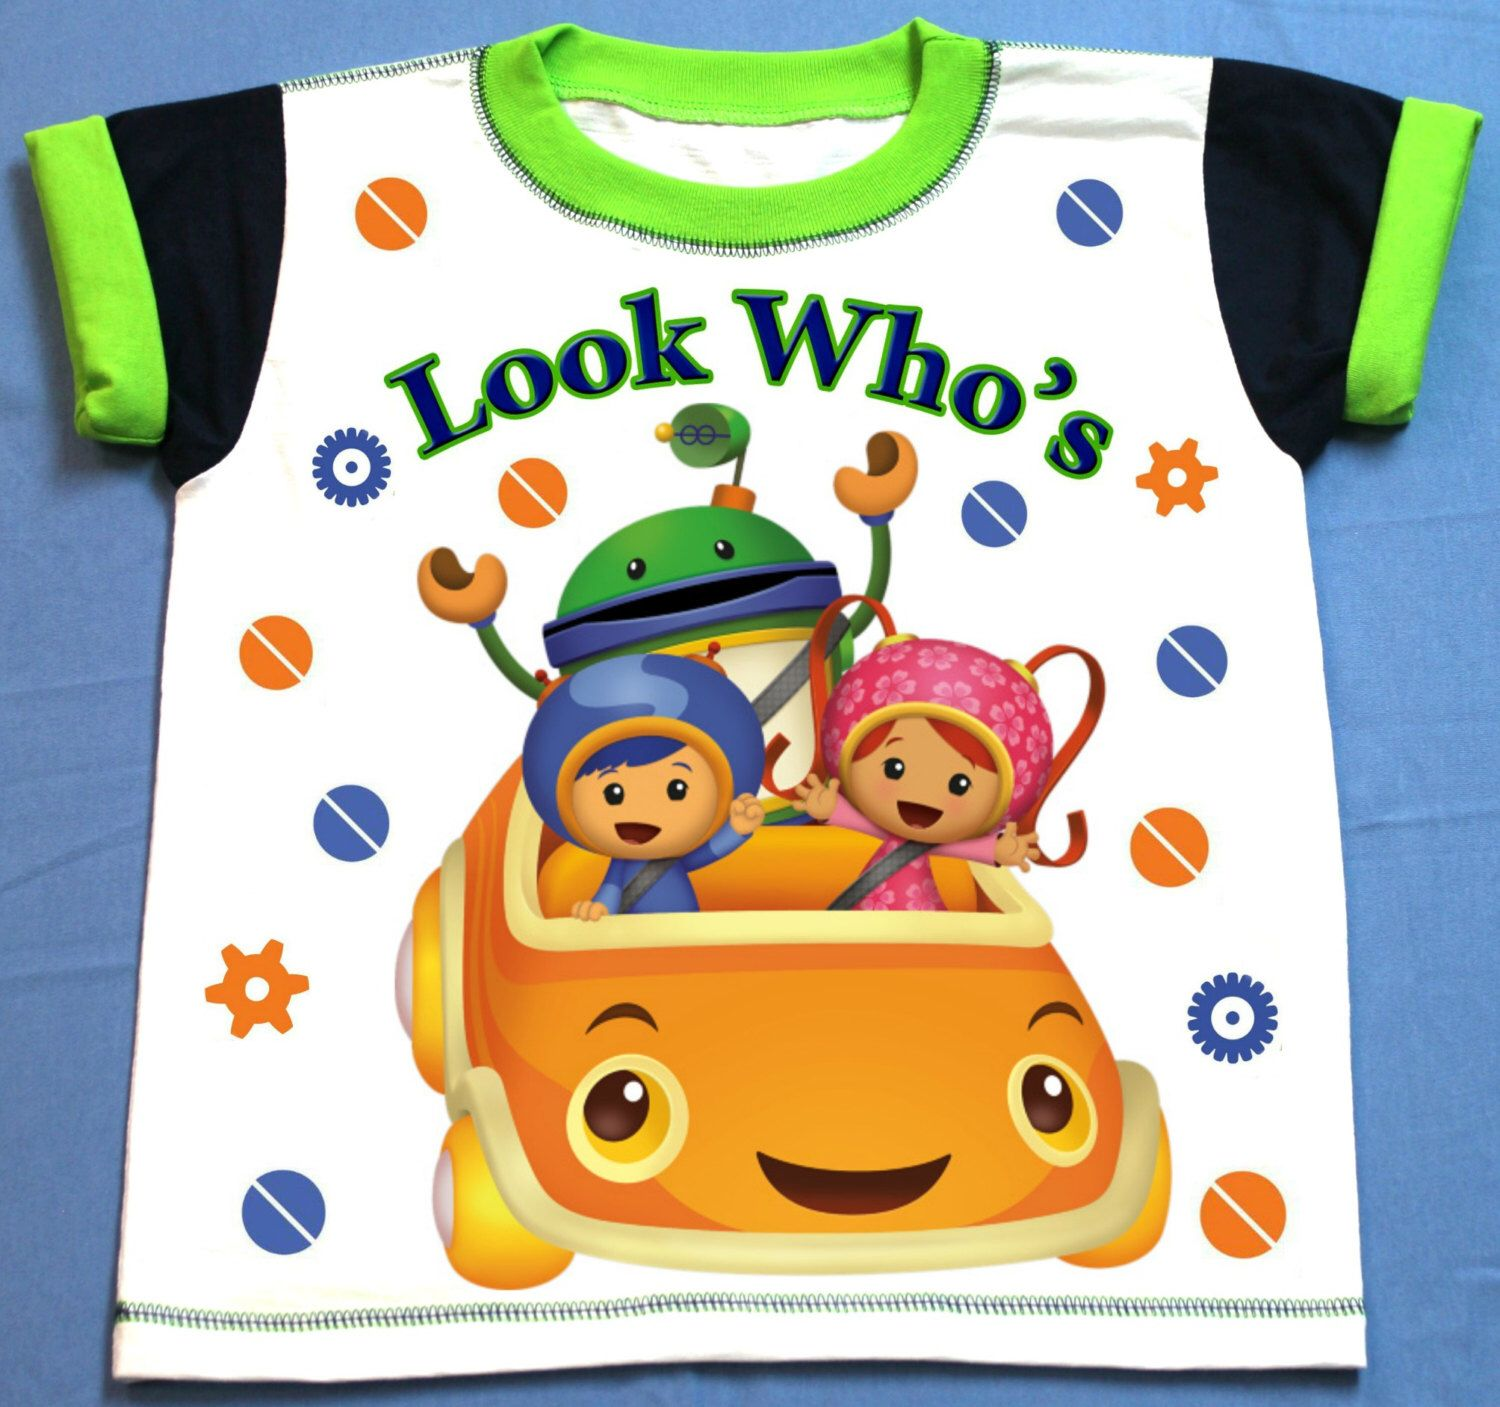 Team Umizoomi T-shirt Personalized 12 Months,18 Months,2t,3t,4t,5t,6t Personalization is included at no additional cost. by FantasyKidsDesigns on Etsy https://www.etsy.com/listing/274824528/team-umizoomi-t-shirt-personalized-12